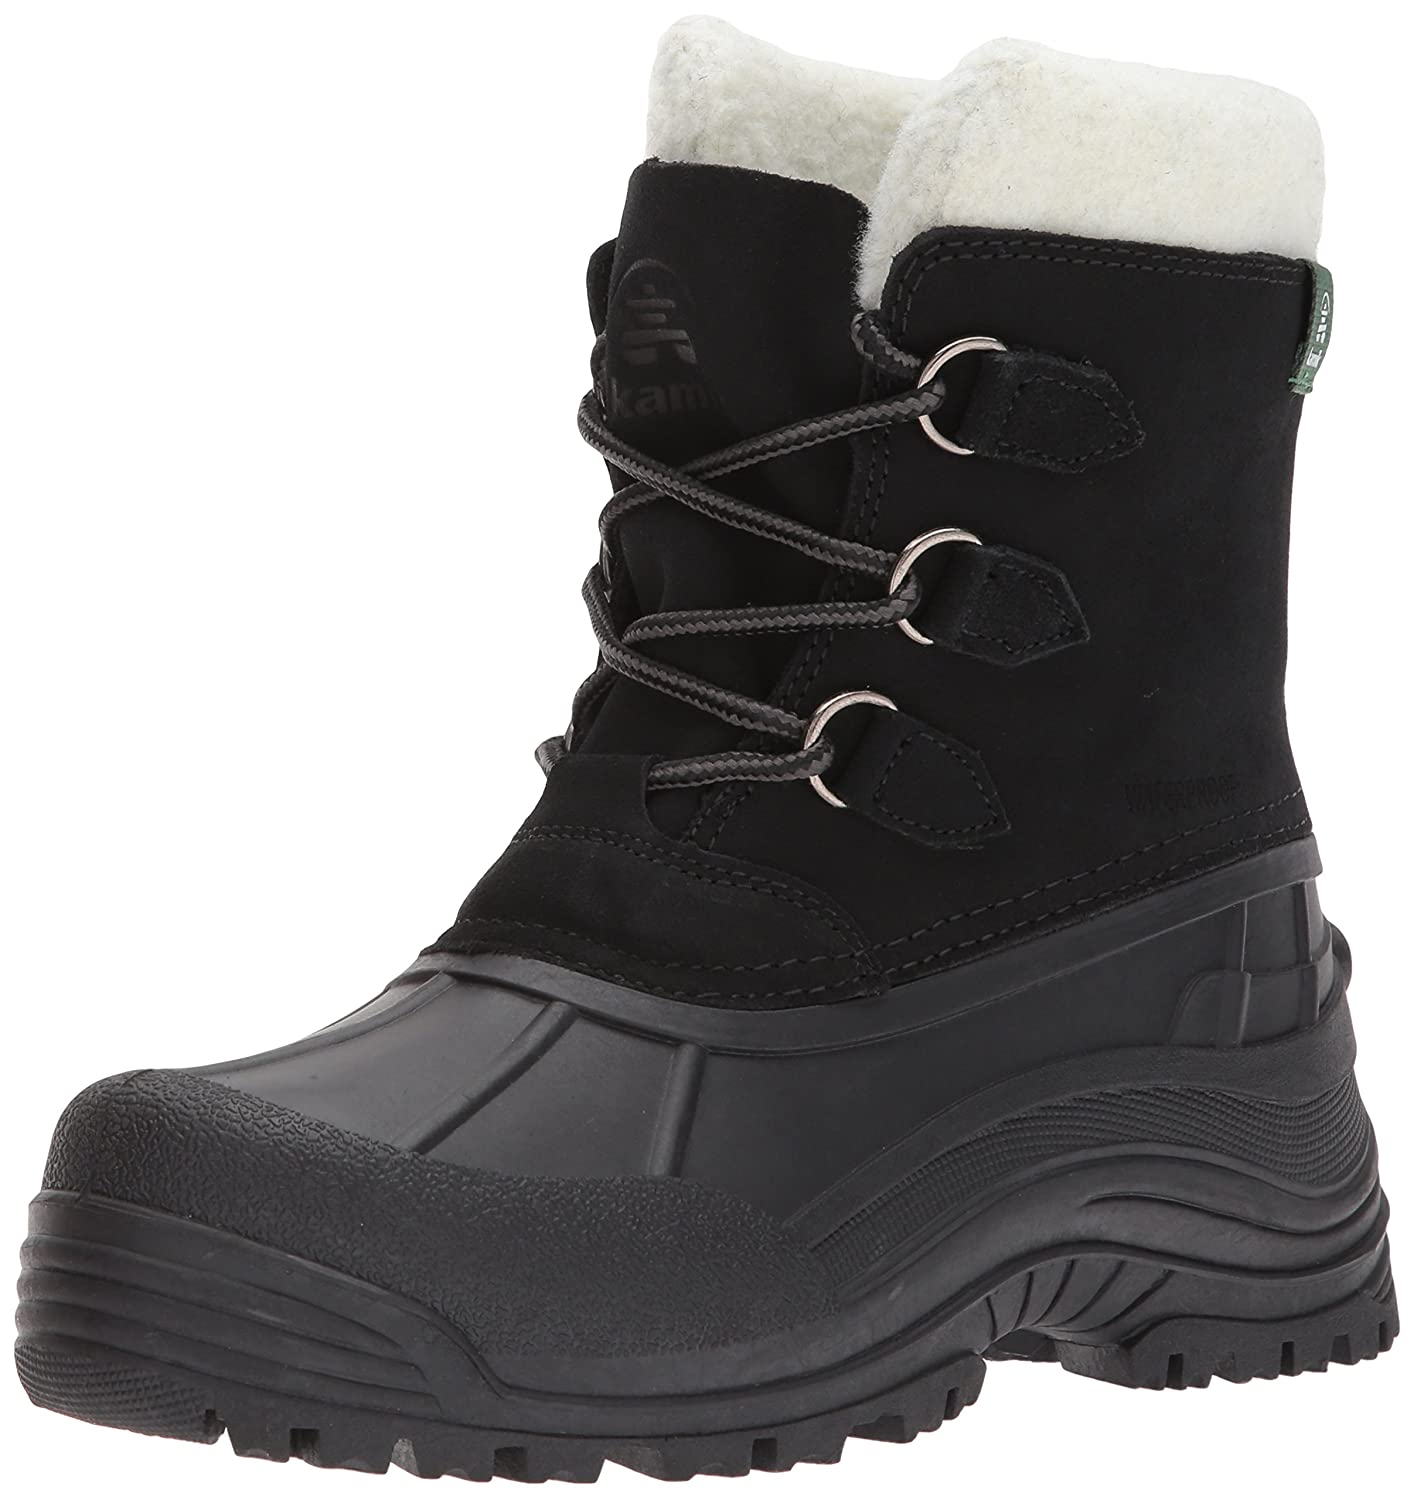 Kamik Women's Tracy Snow Boot B01MU5T9P6 7 D US|Black